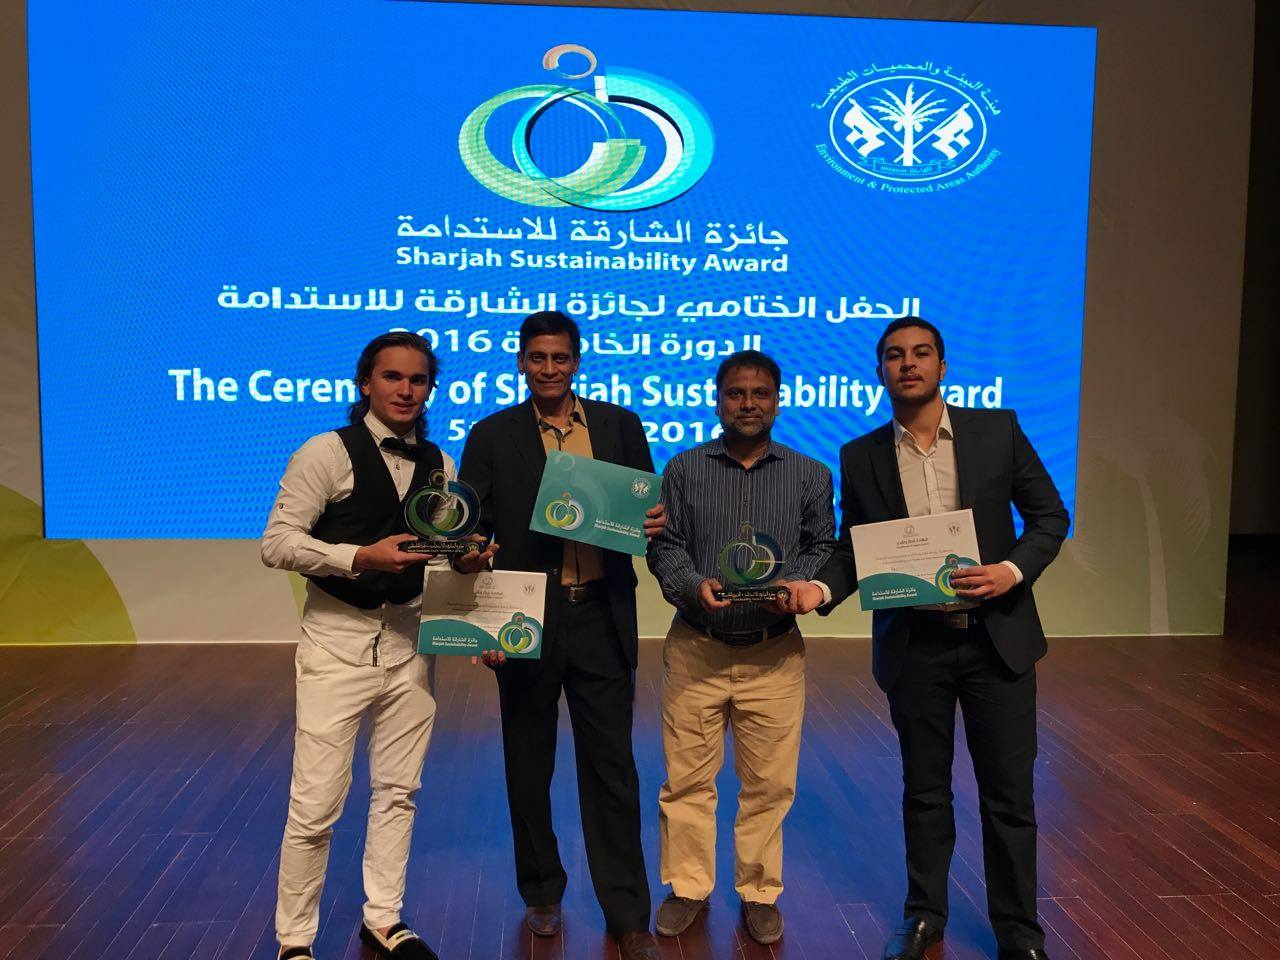 Sharjah Sustainability Award Smart Application Design